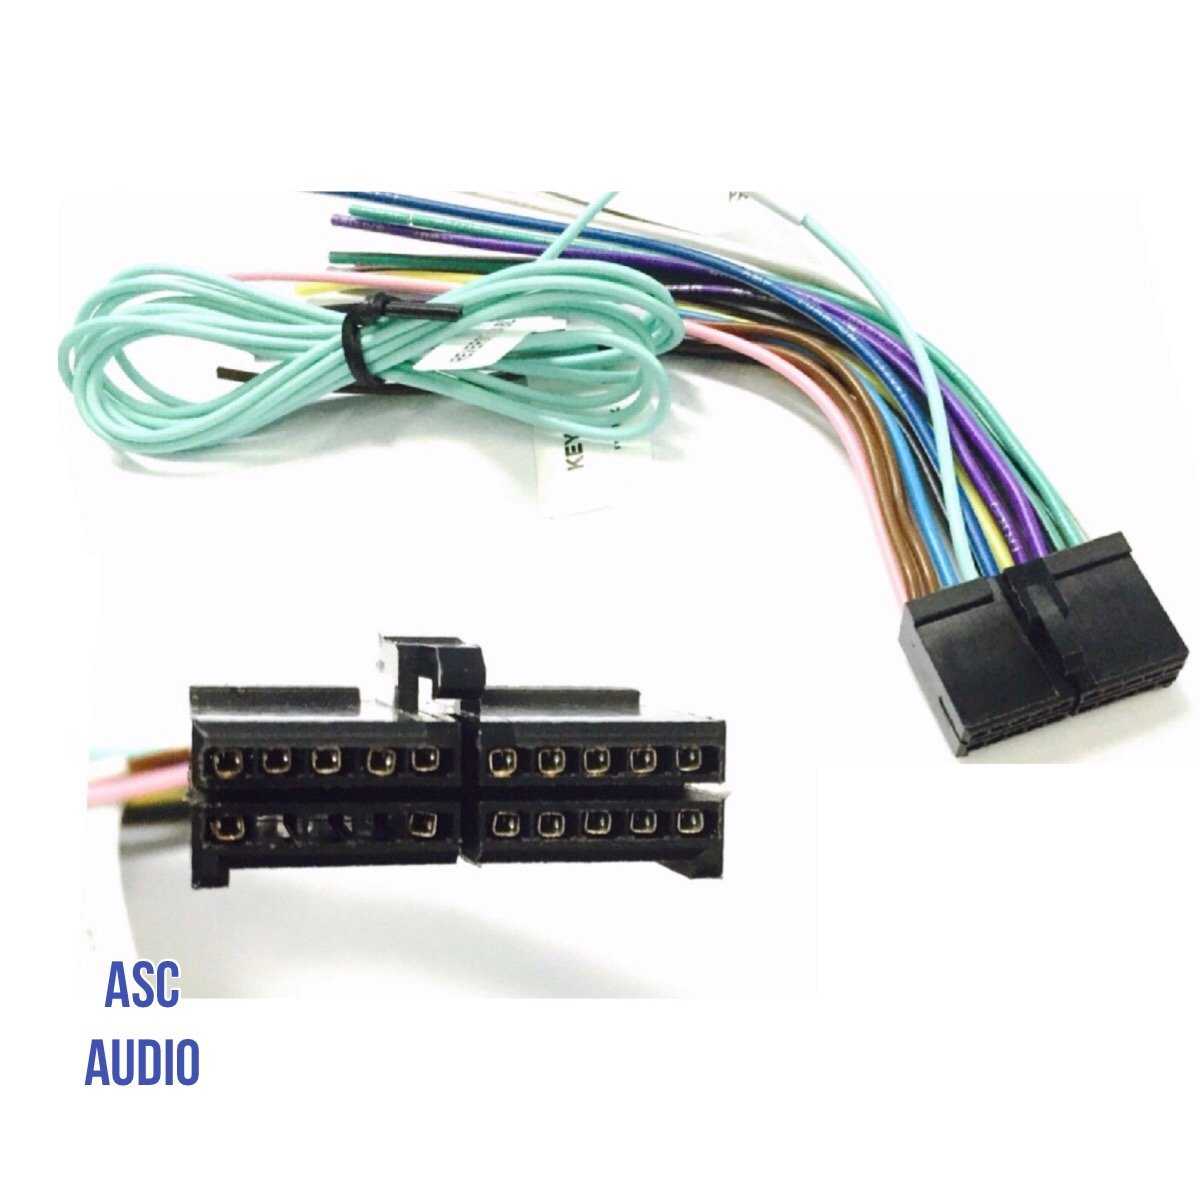 Boss Bv9555 Wiring Harness Library Diagram Bv9364nb Asc Audio Car Stereo Radio Wire Plug For Select 20 Pin Radios Dvd Nav